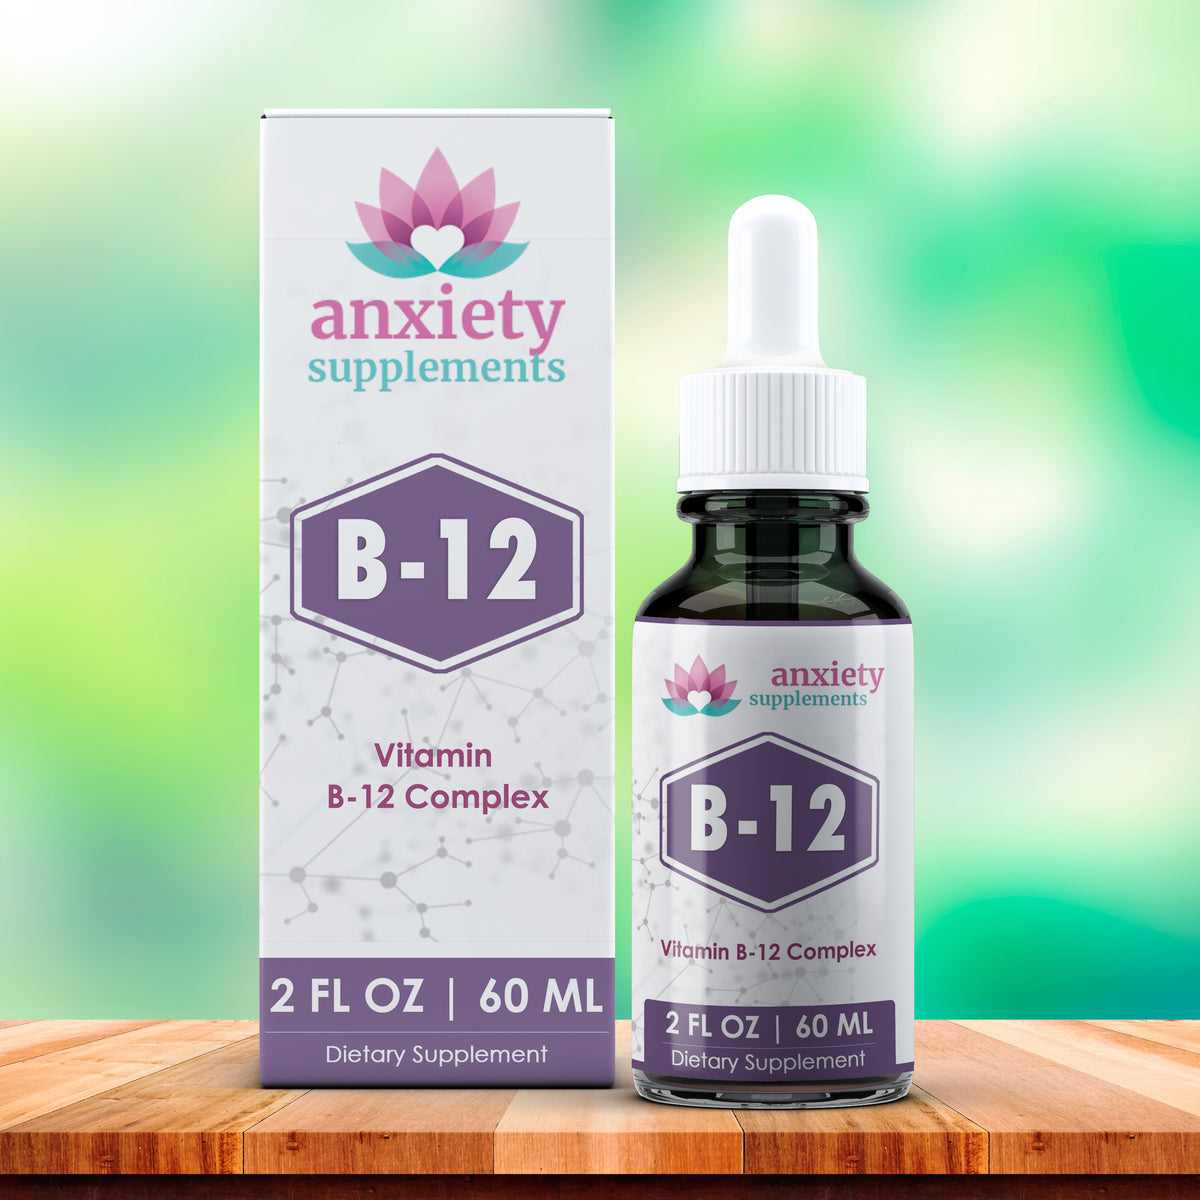 B12 drops for anxiety 2 fl oz bottle and box with green gradient background on colorful wood table